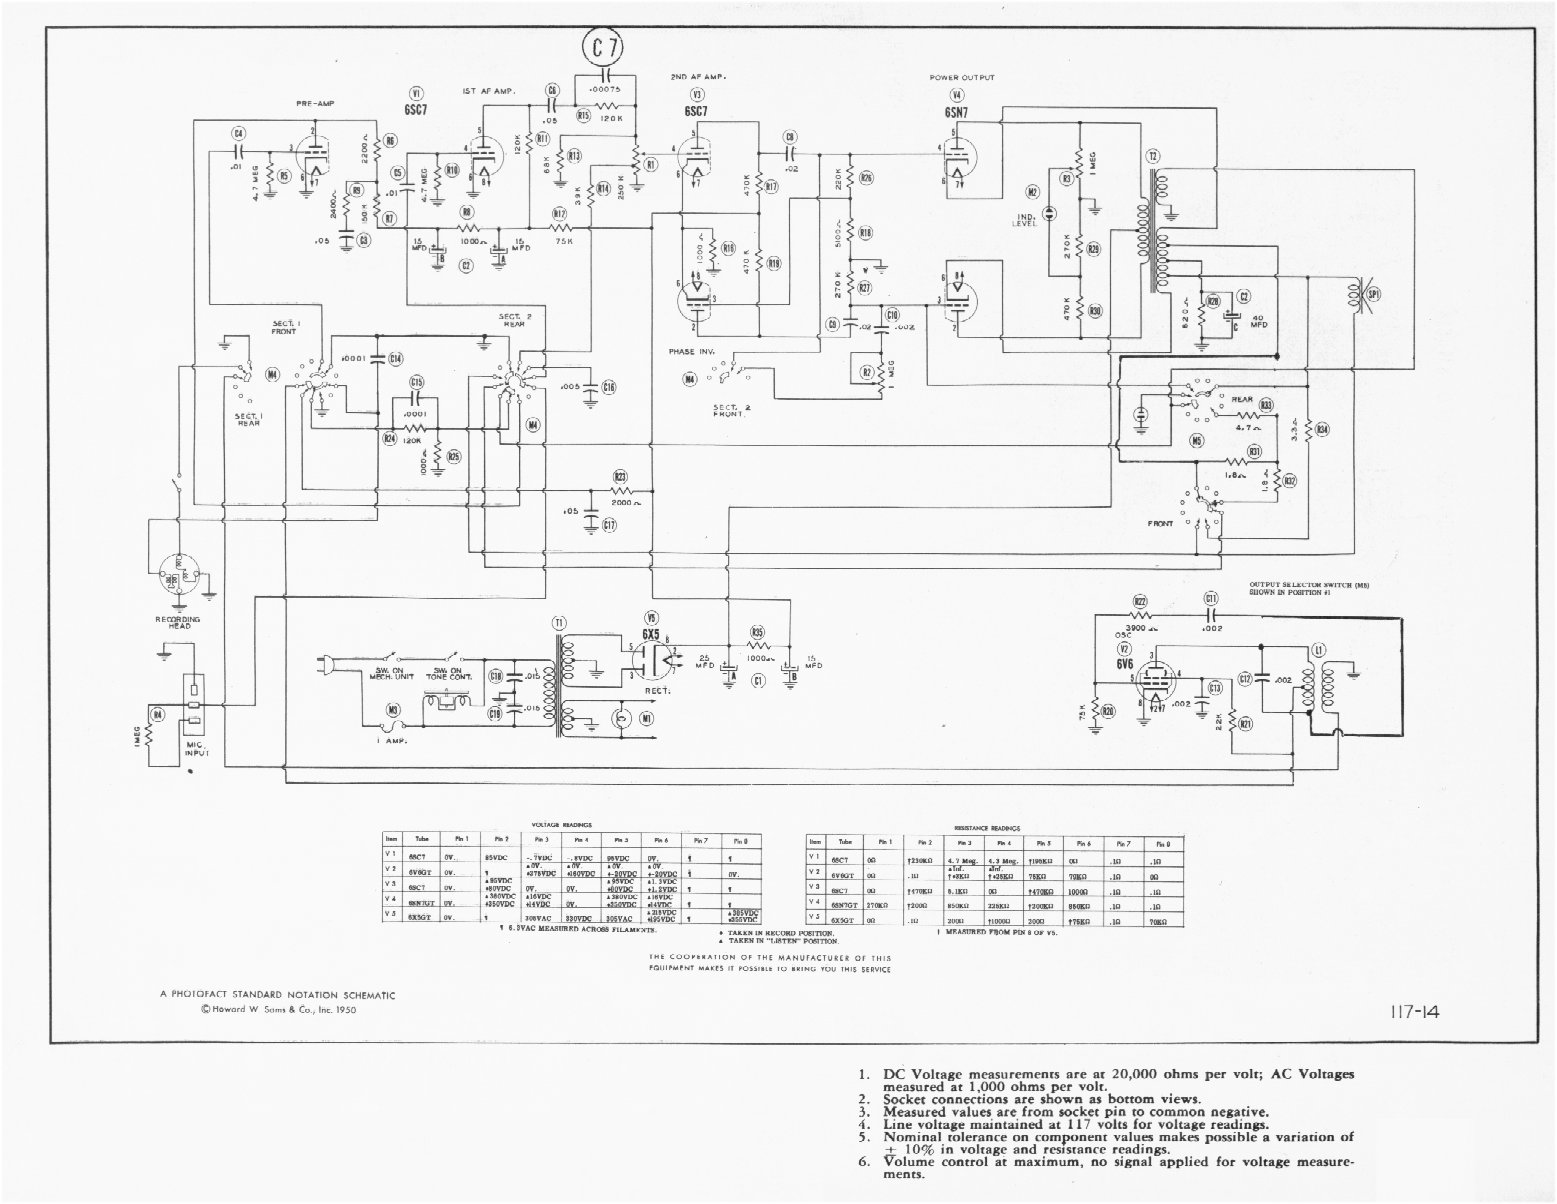 es 335 wiring diagram gibson awesome for 1998 36 volt ez go golf cart simple diagrams a guitar pickup